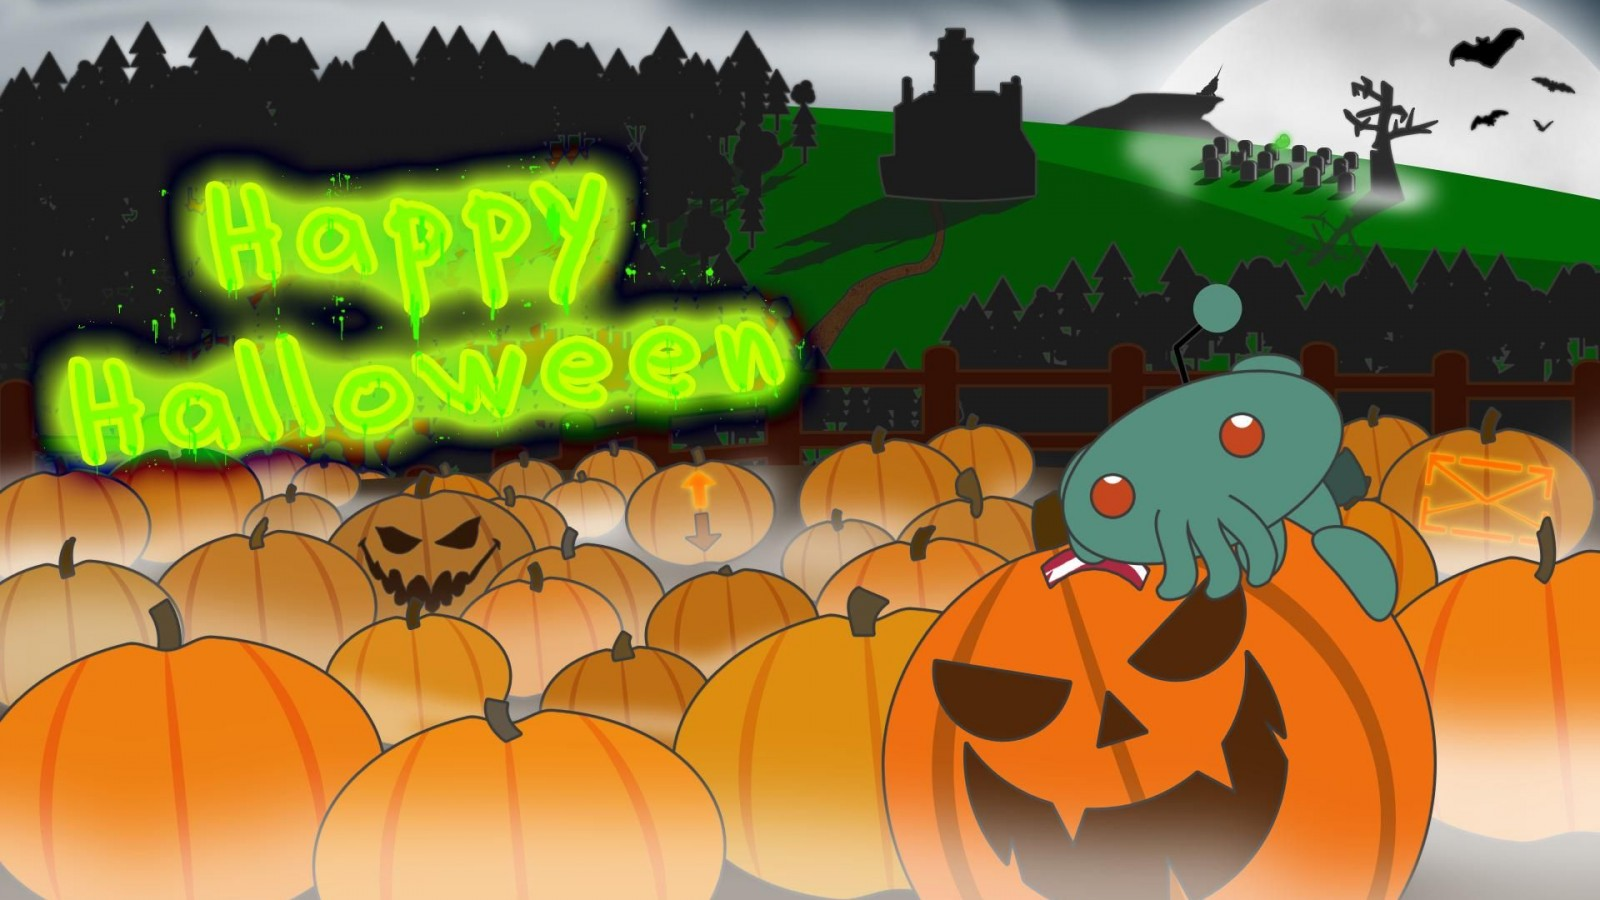 Abstract Widescreen Halloween Wallpaper 1600 X 900 Wallpaper